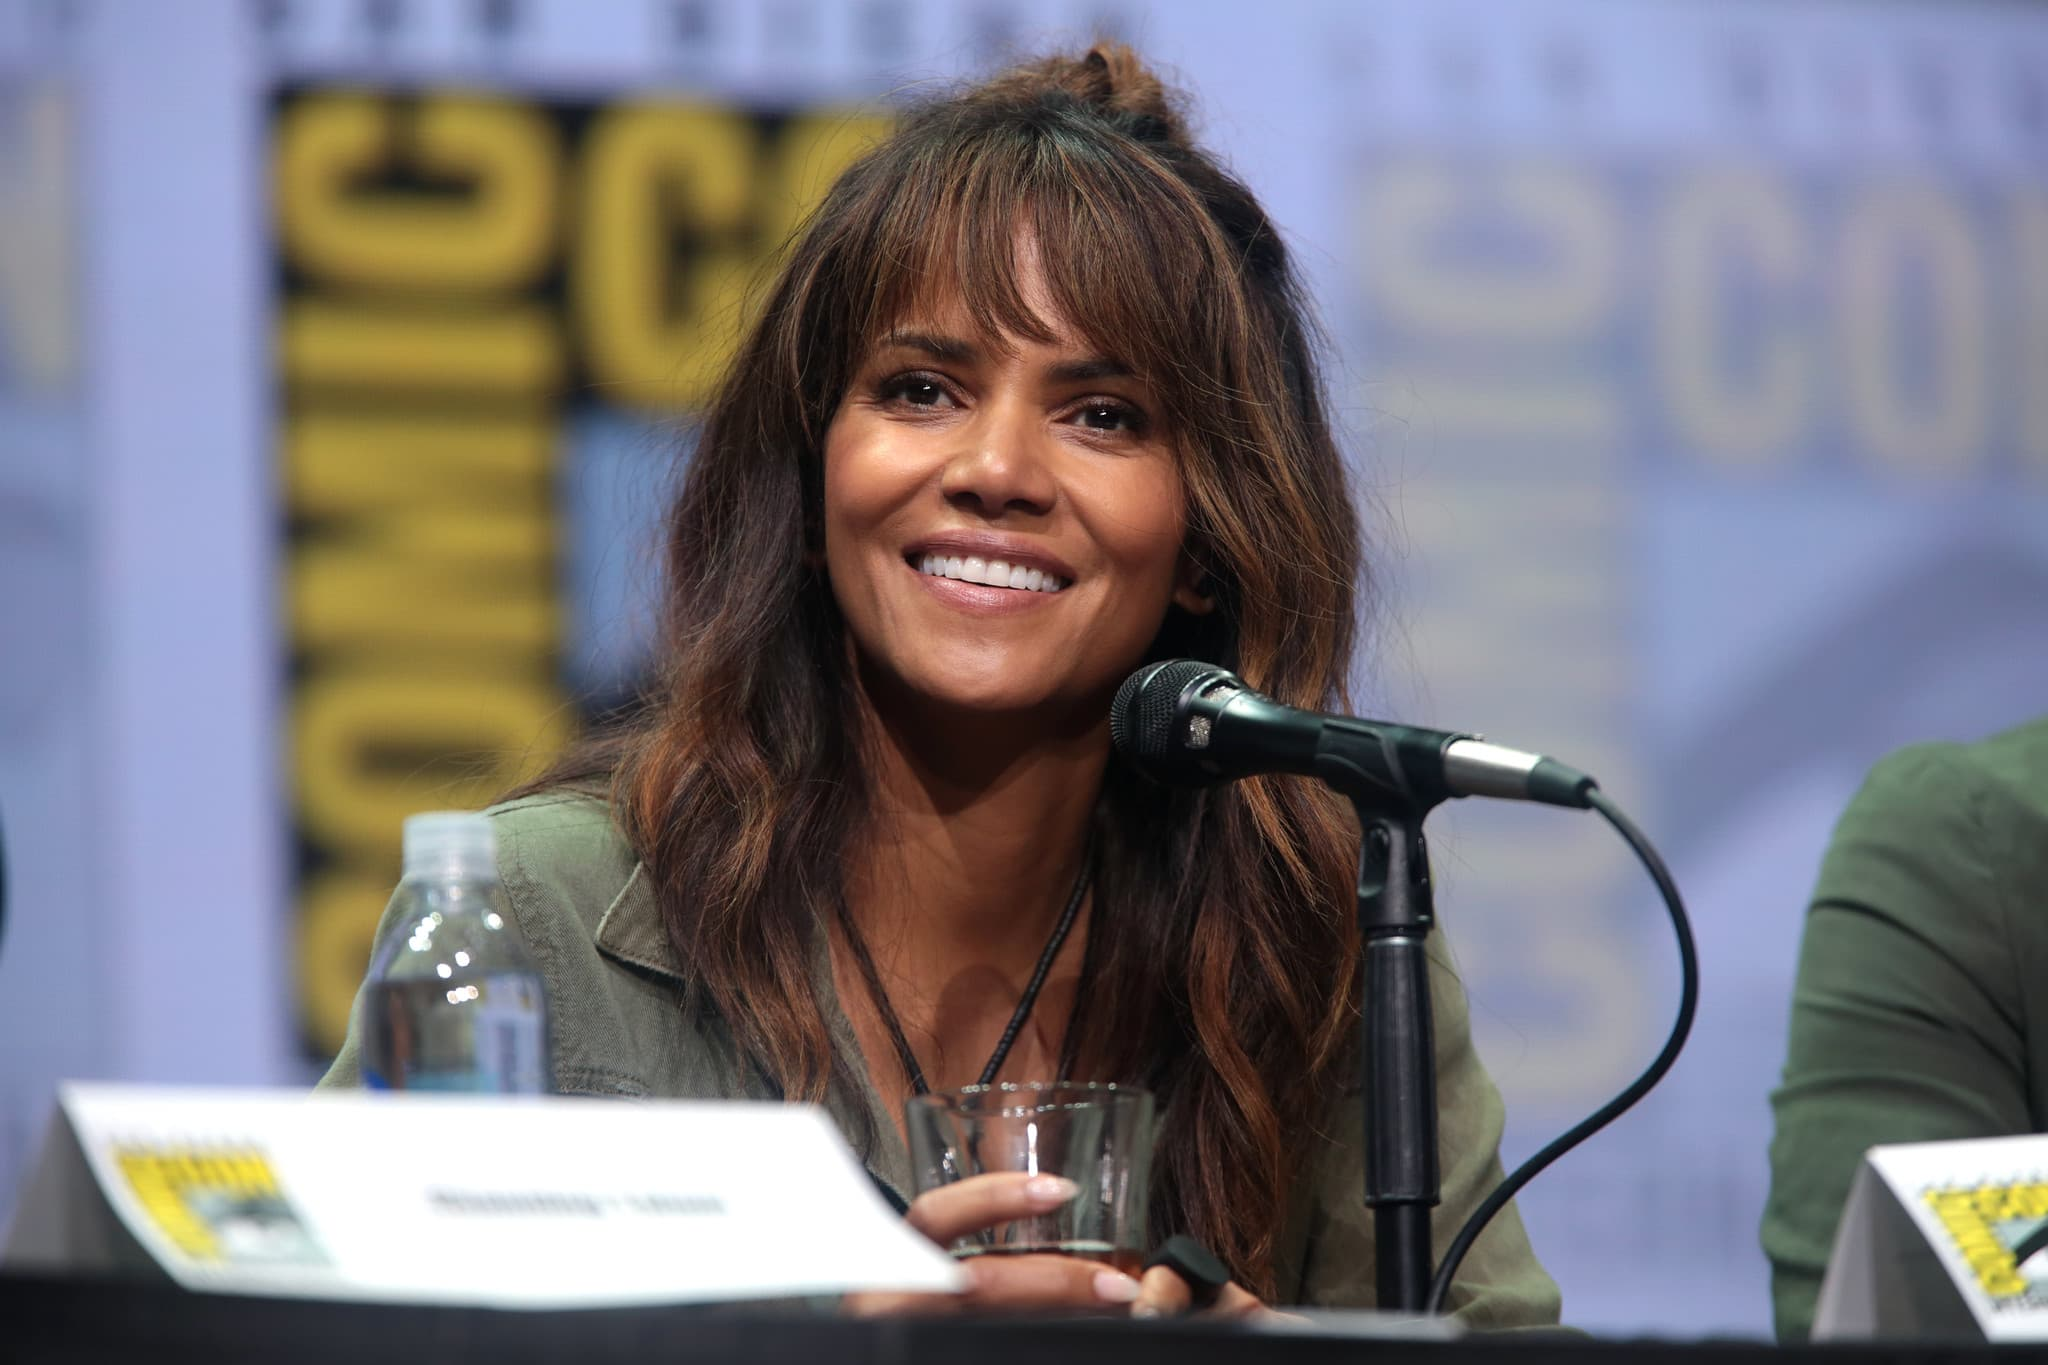 Halle Berry apologizes for considering trans role, says trans people should 'tell their own stories'